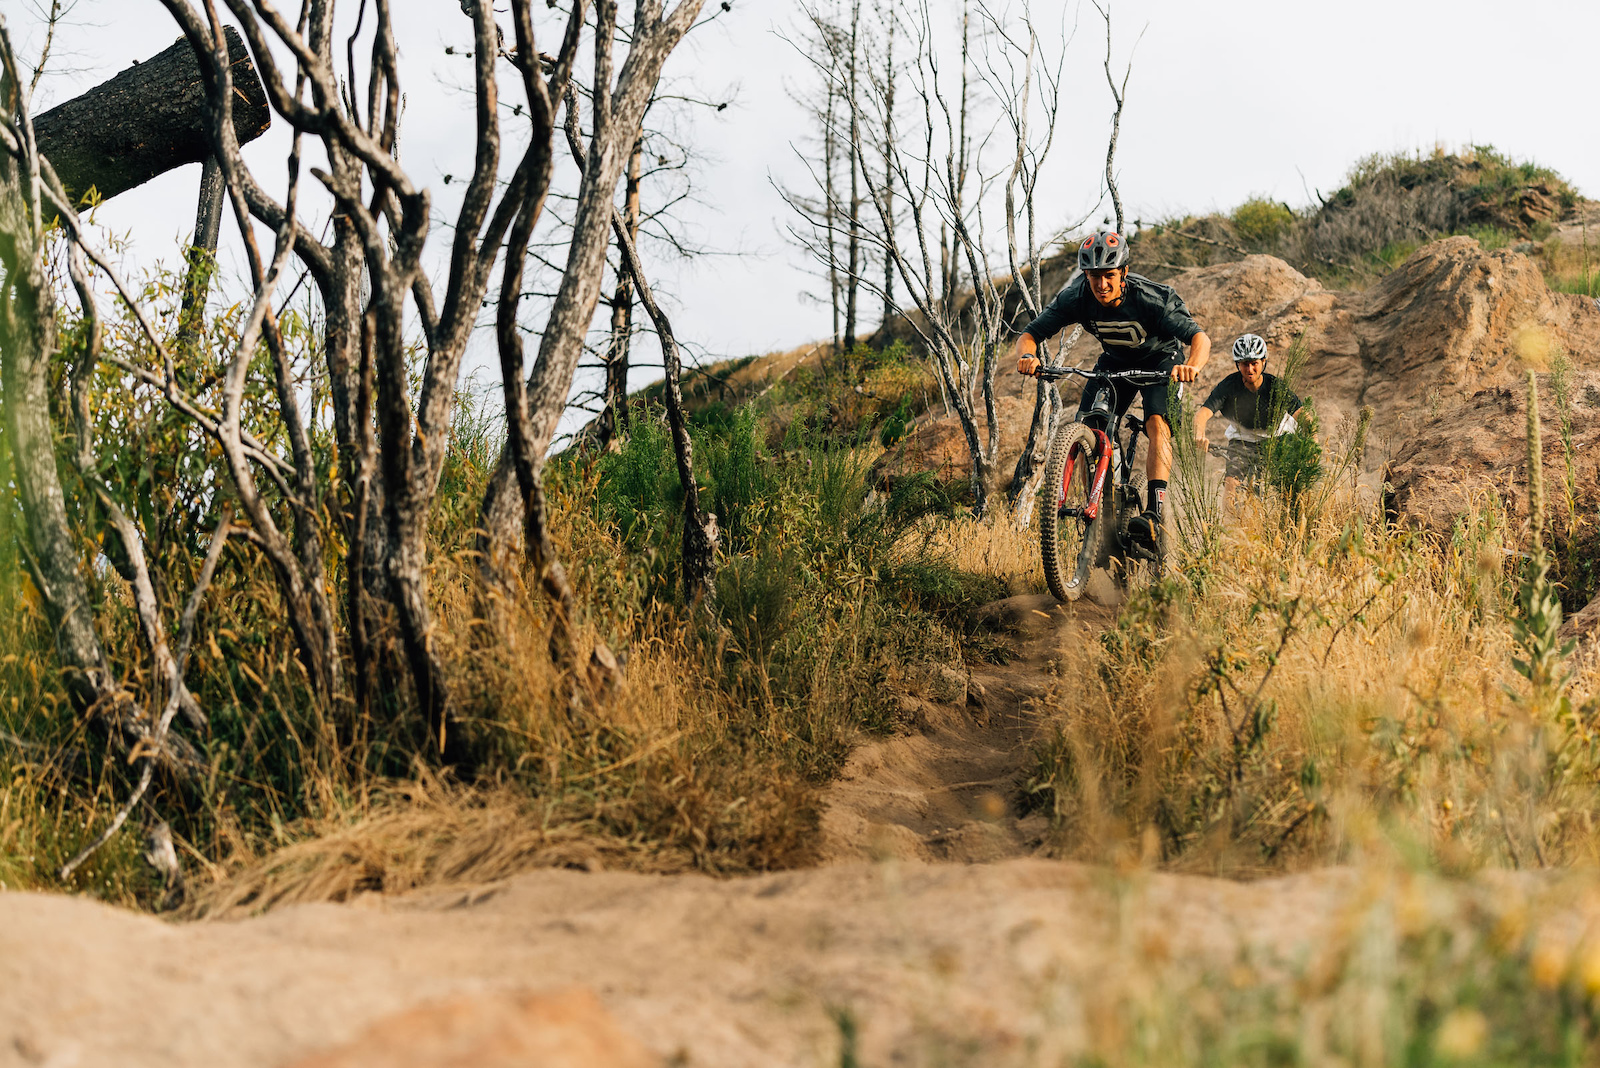 Straight into some rocky single track.